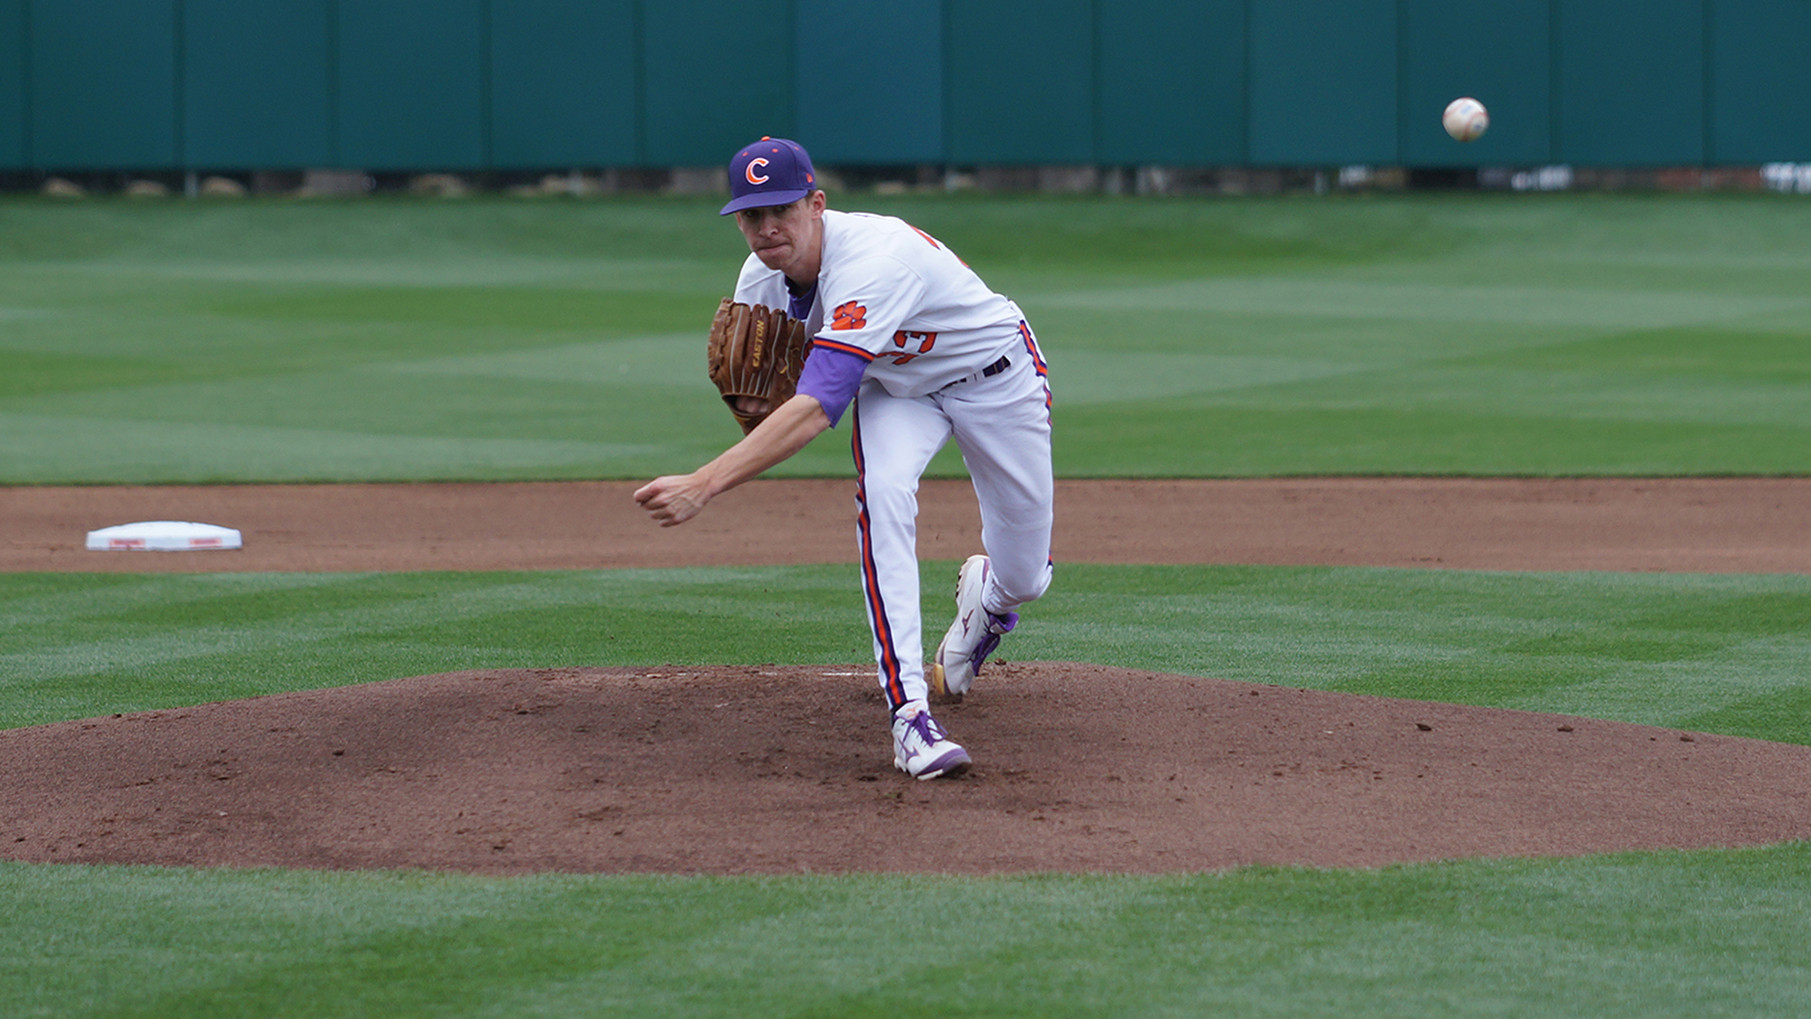 NC State Evens Series With 9-4 Win Over No. 15 Clemson on Sunday